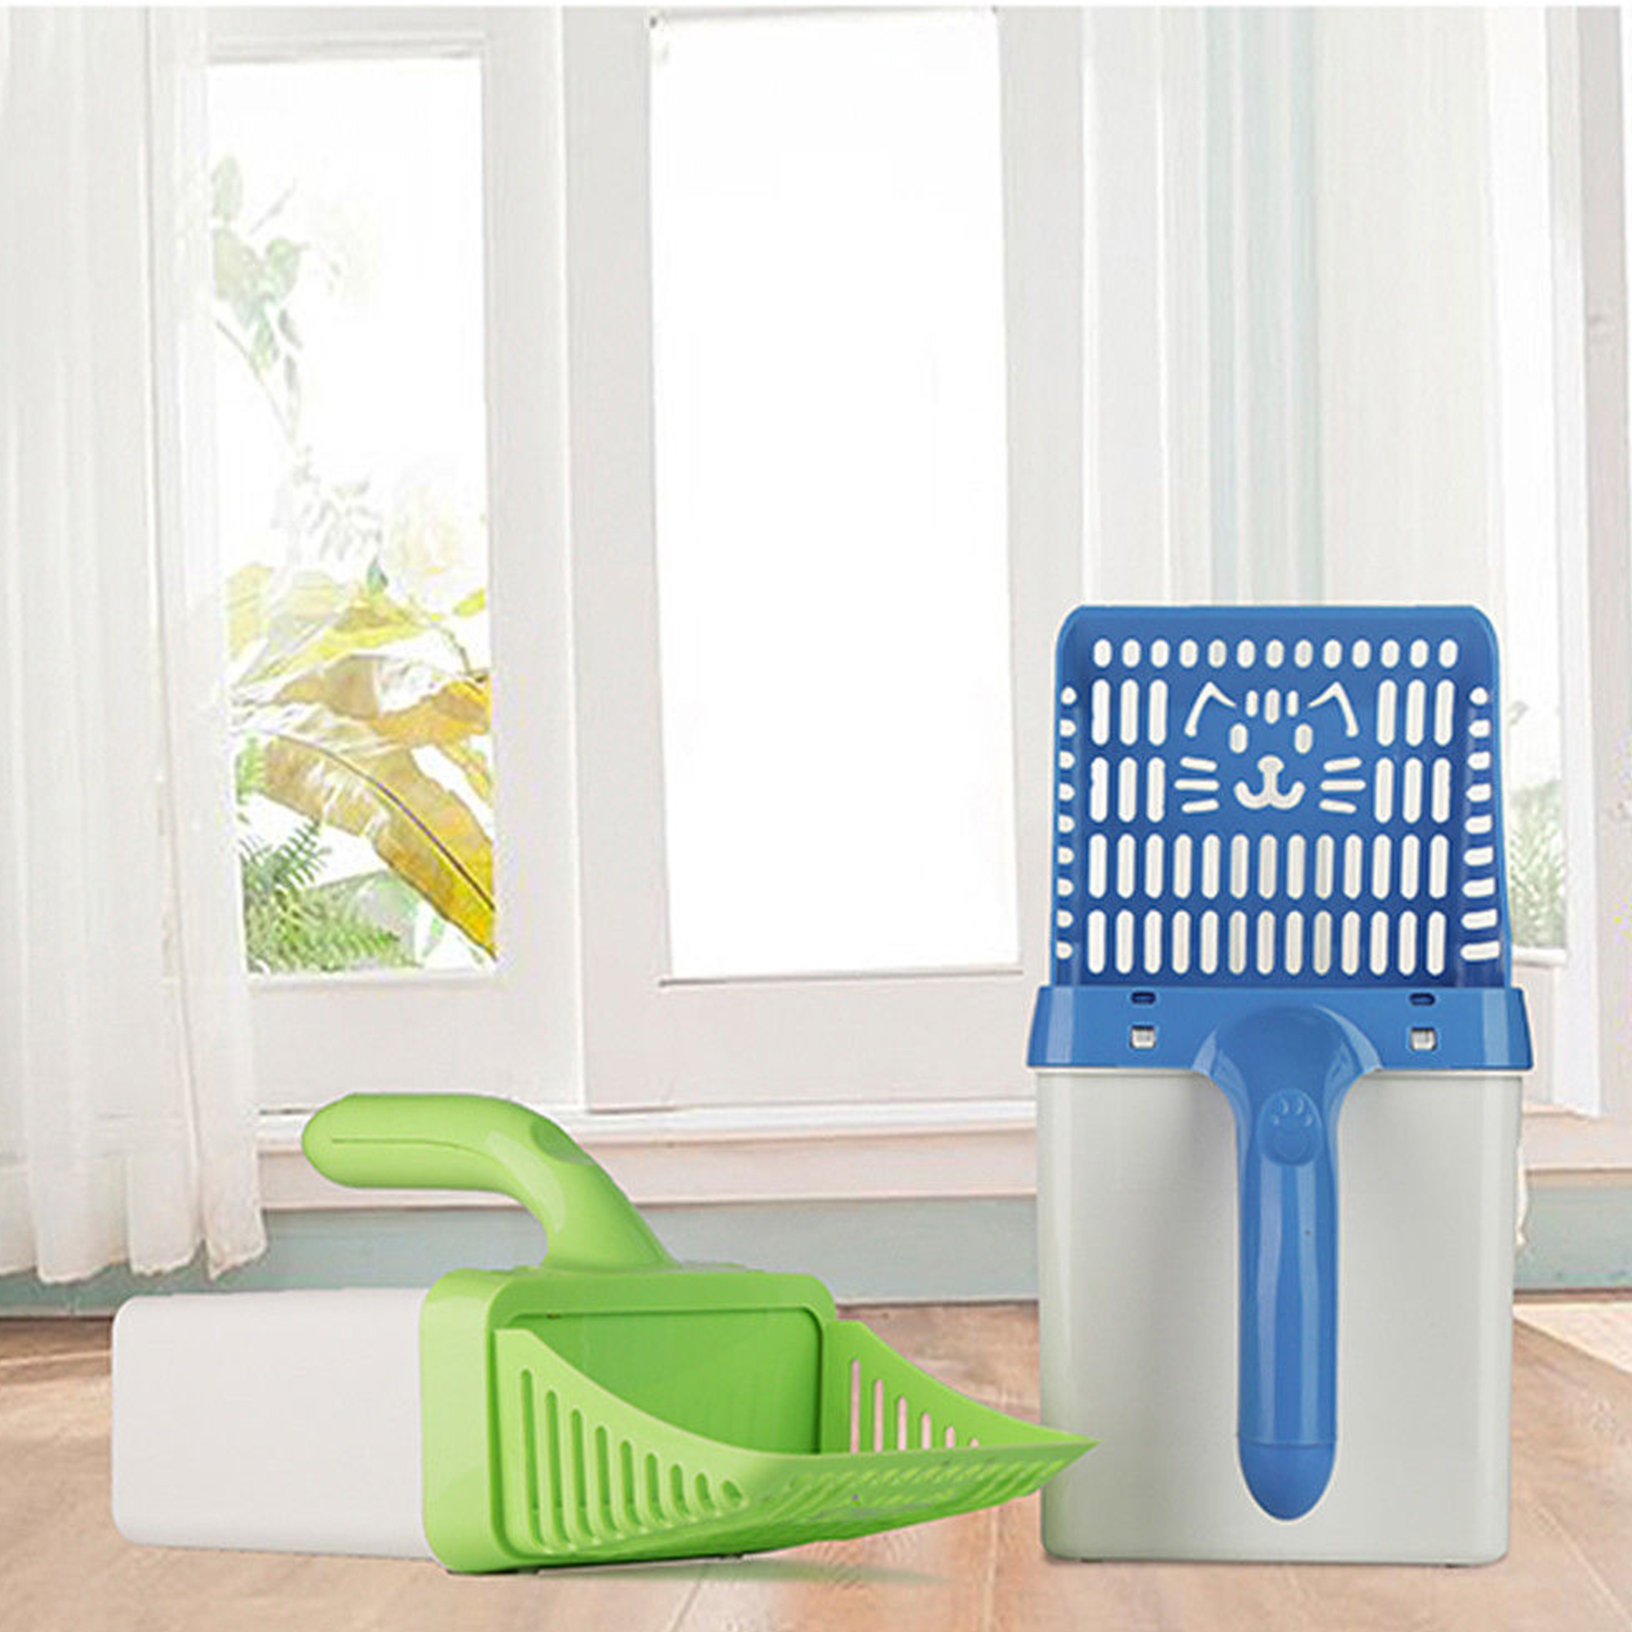 1* Neater Cat Litter Scoop Waste Sifter Pet Sand Shovel Cleaning Tool Set US New